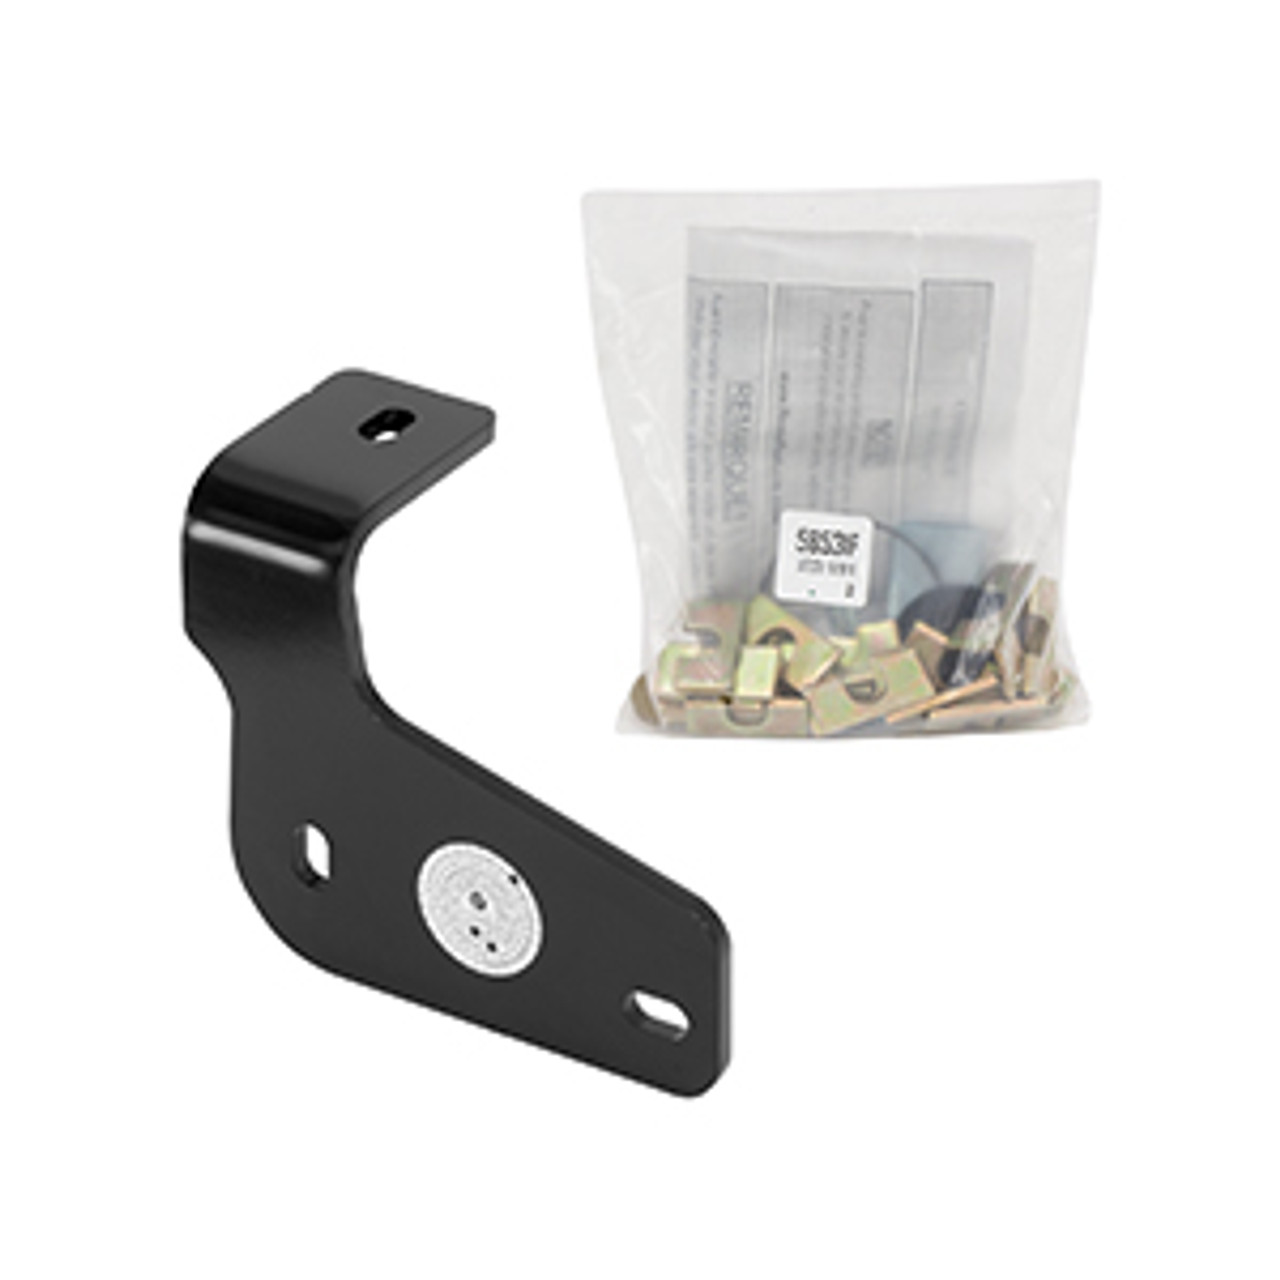 58531 --- Fifth Wheel Trailer Hitch Bracket Kit 2015-2020 Ford F150 - Recommended Upgrade Kit